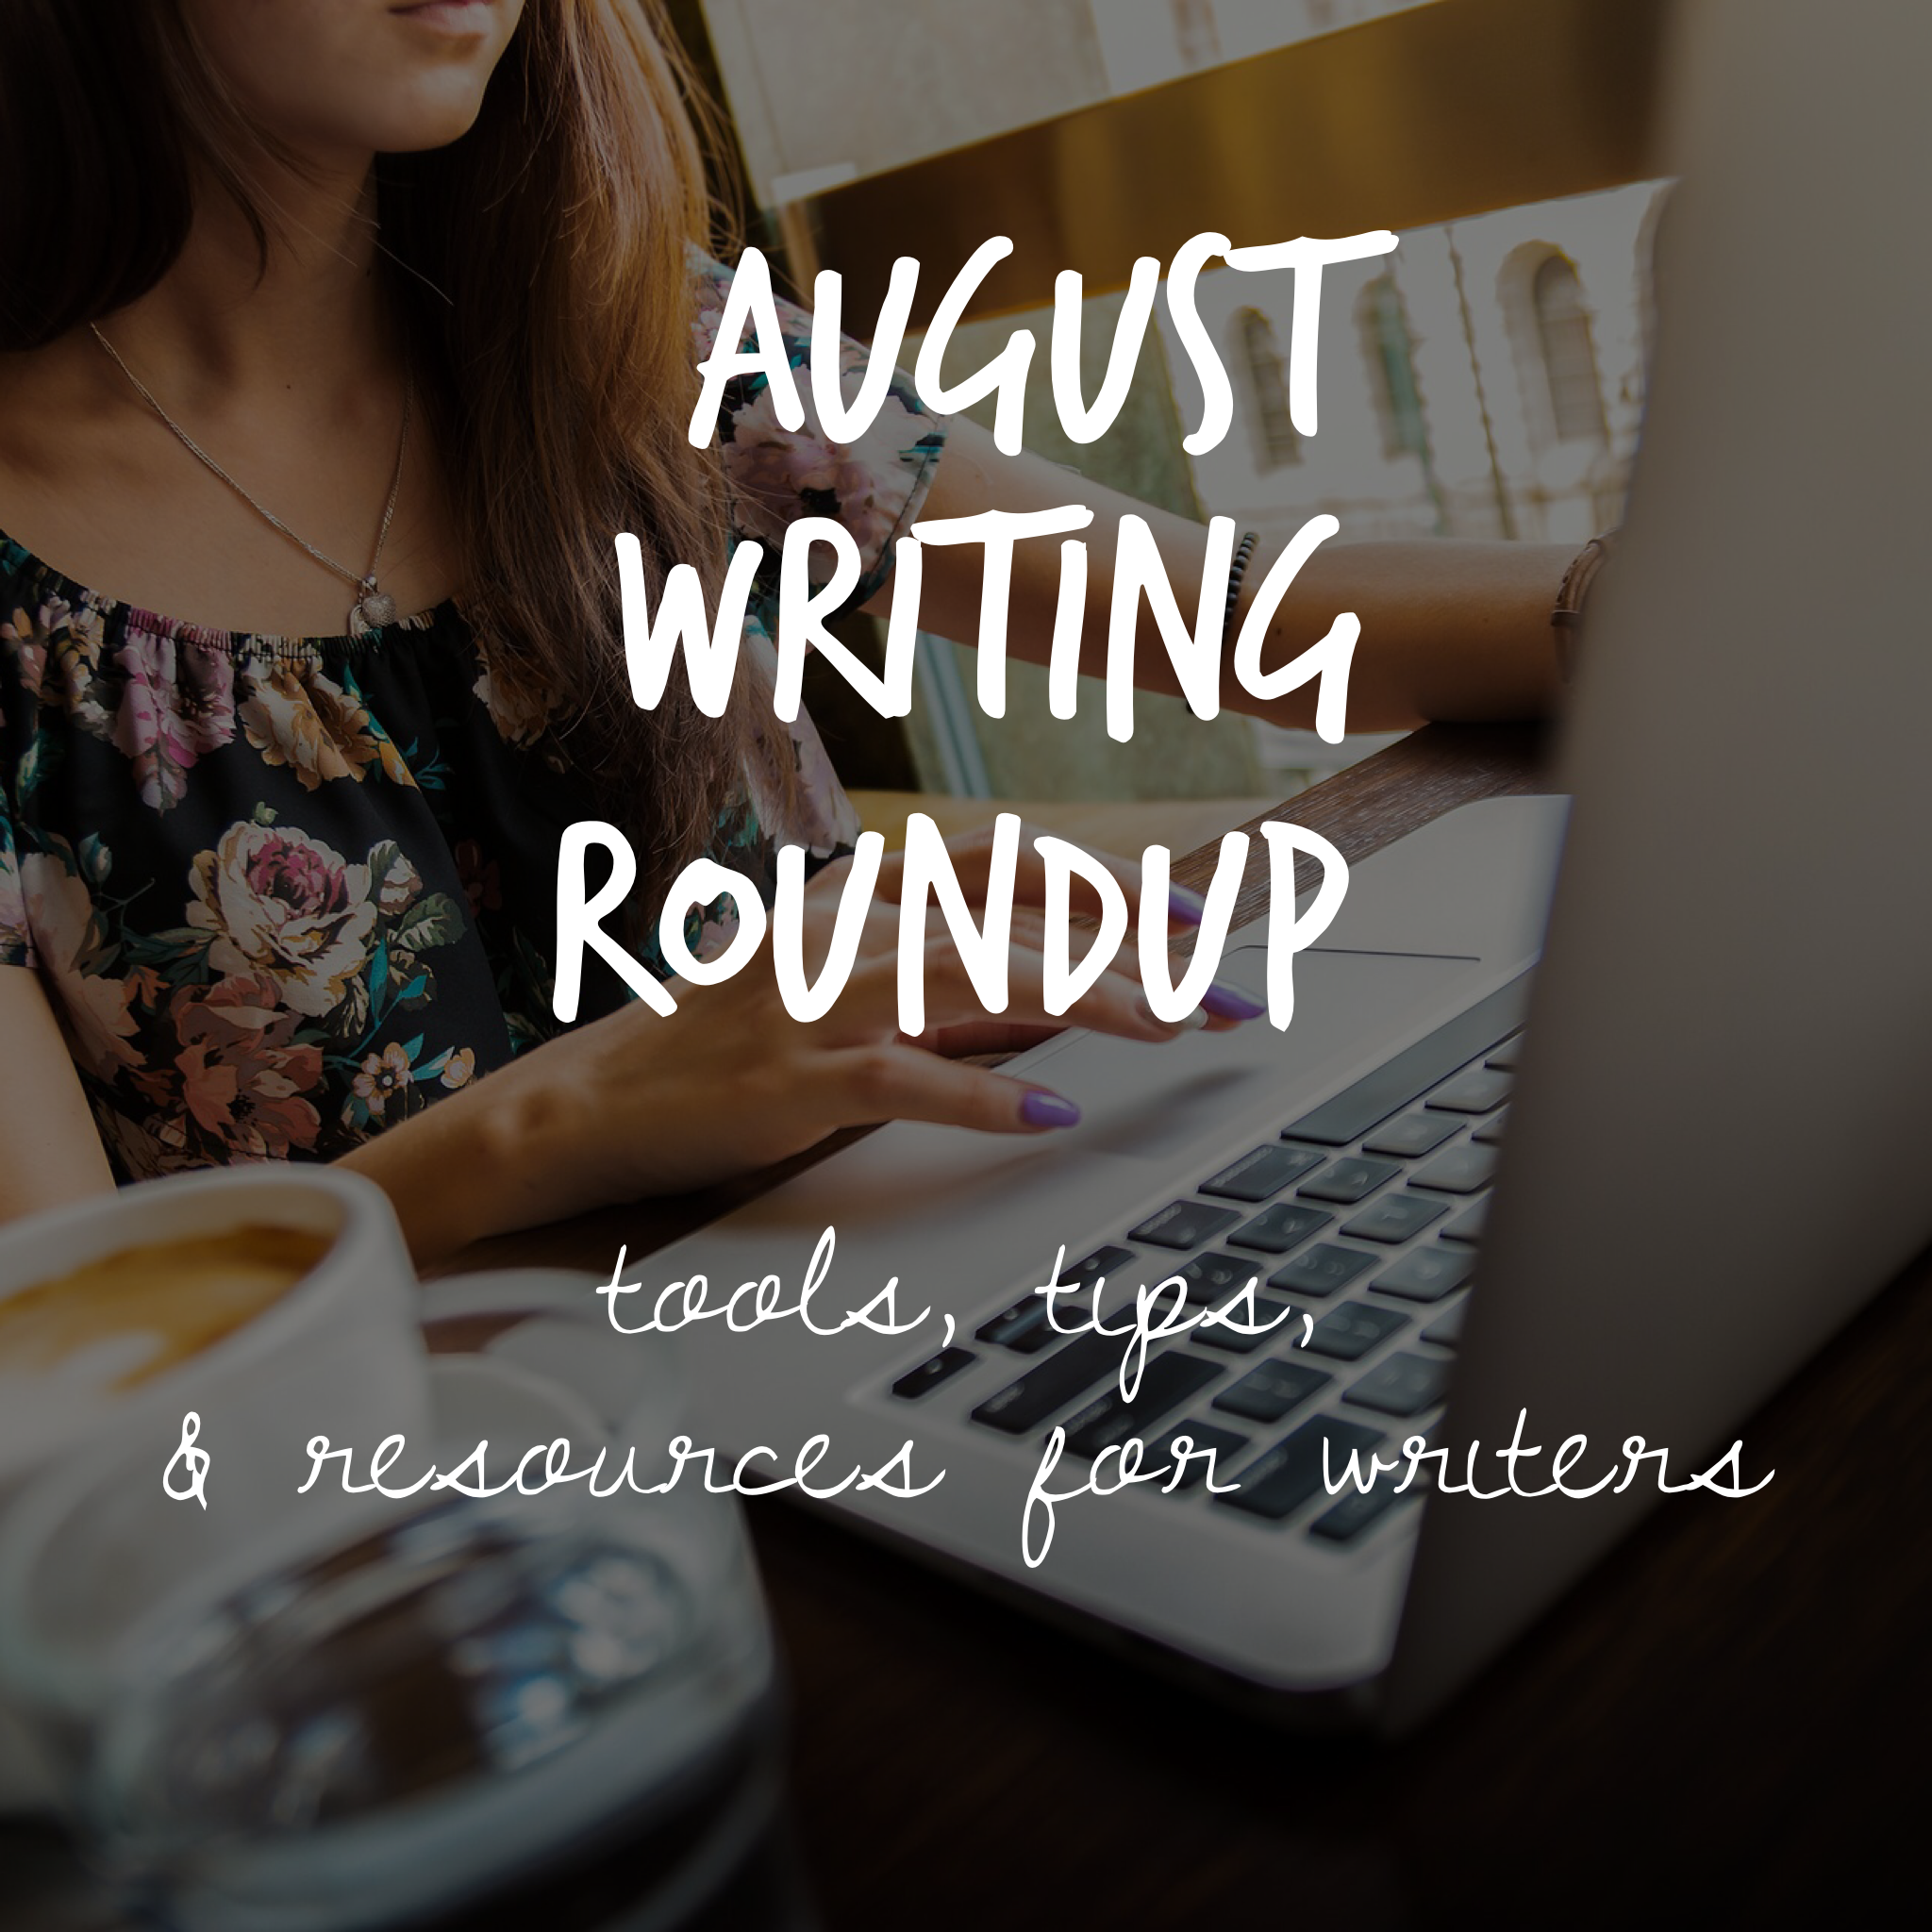 August Writing Roundup: Tools, Tips, and Resources for Writers